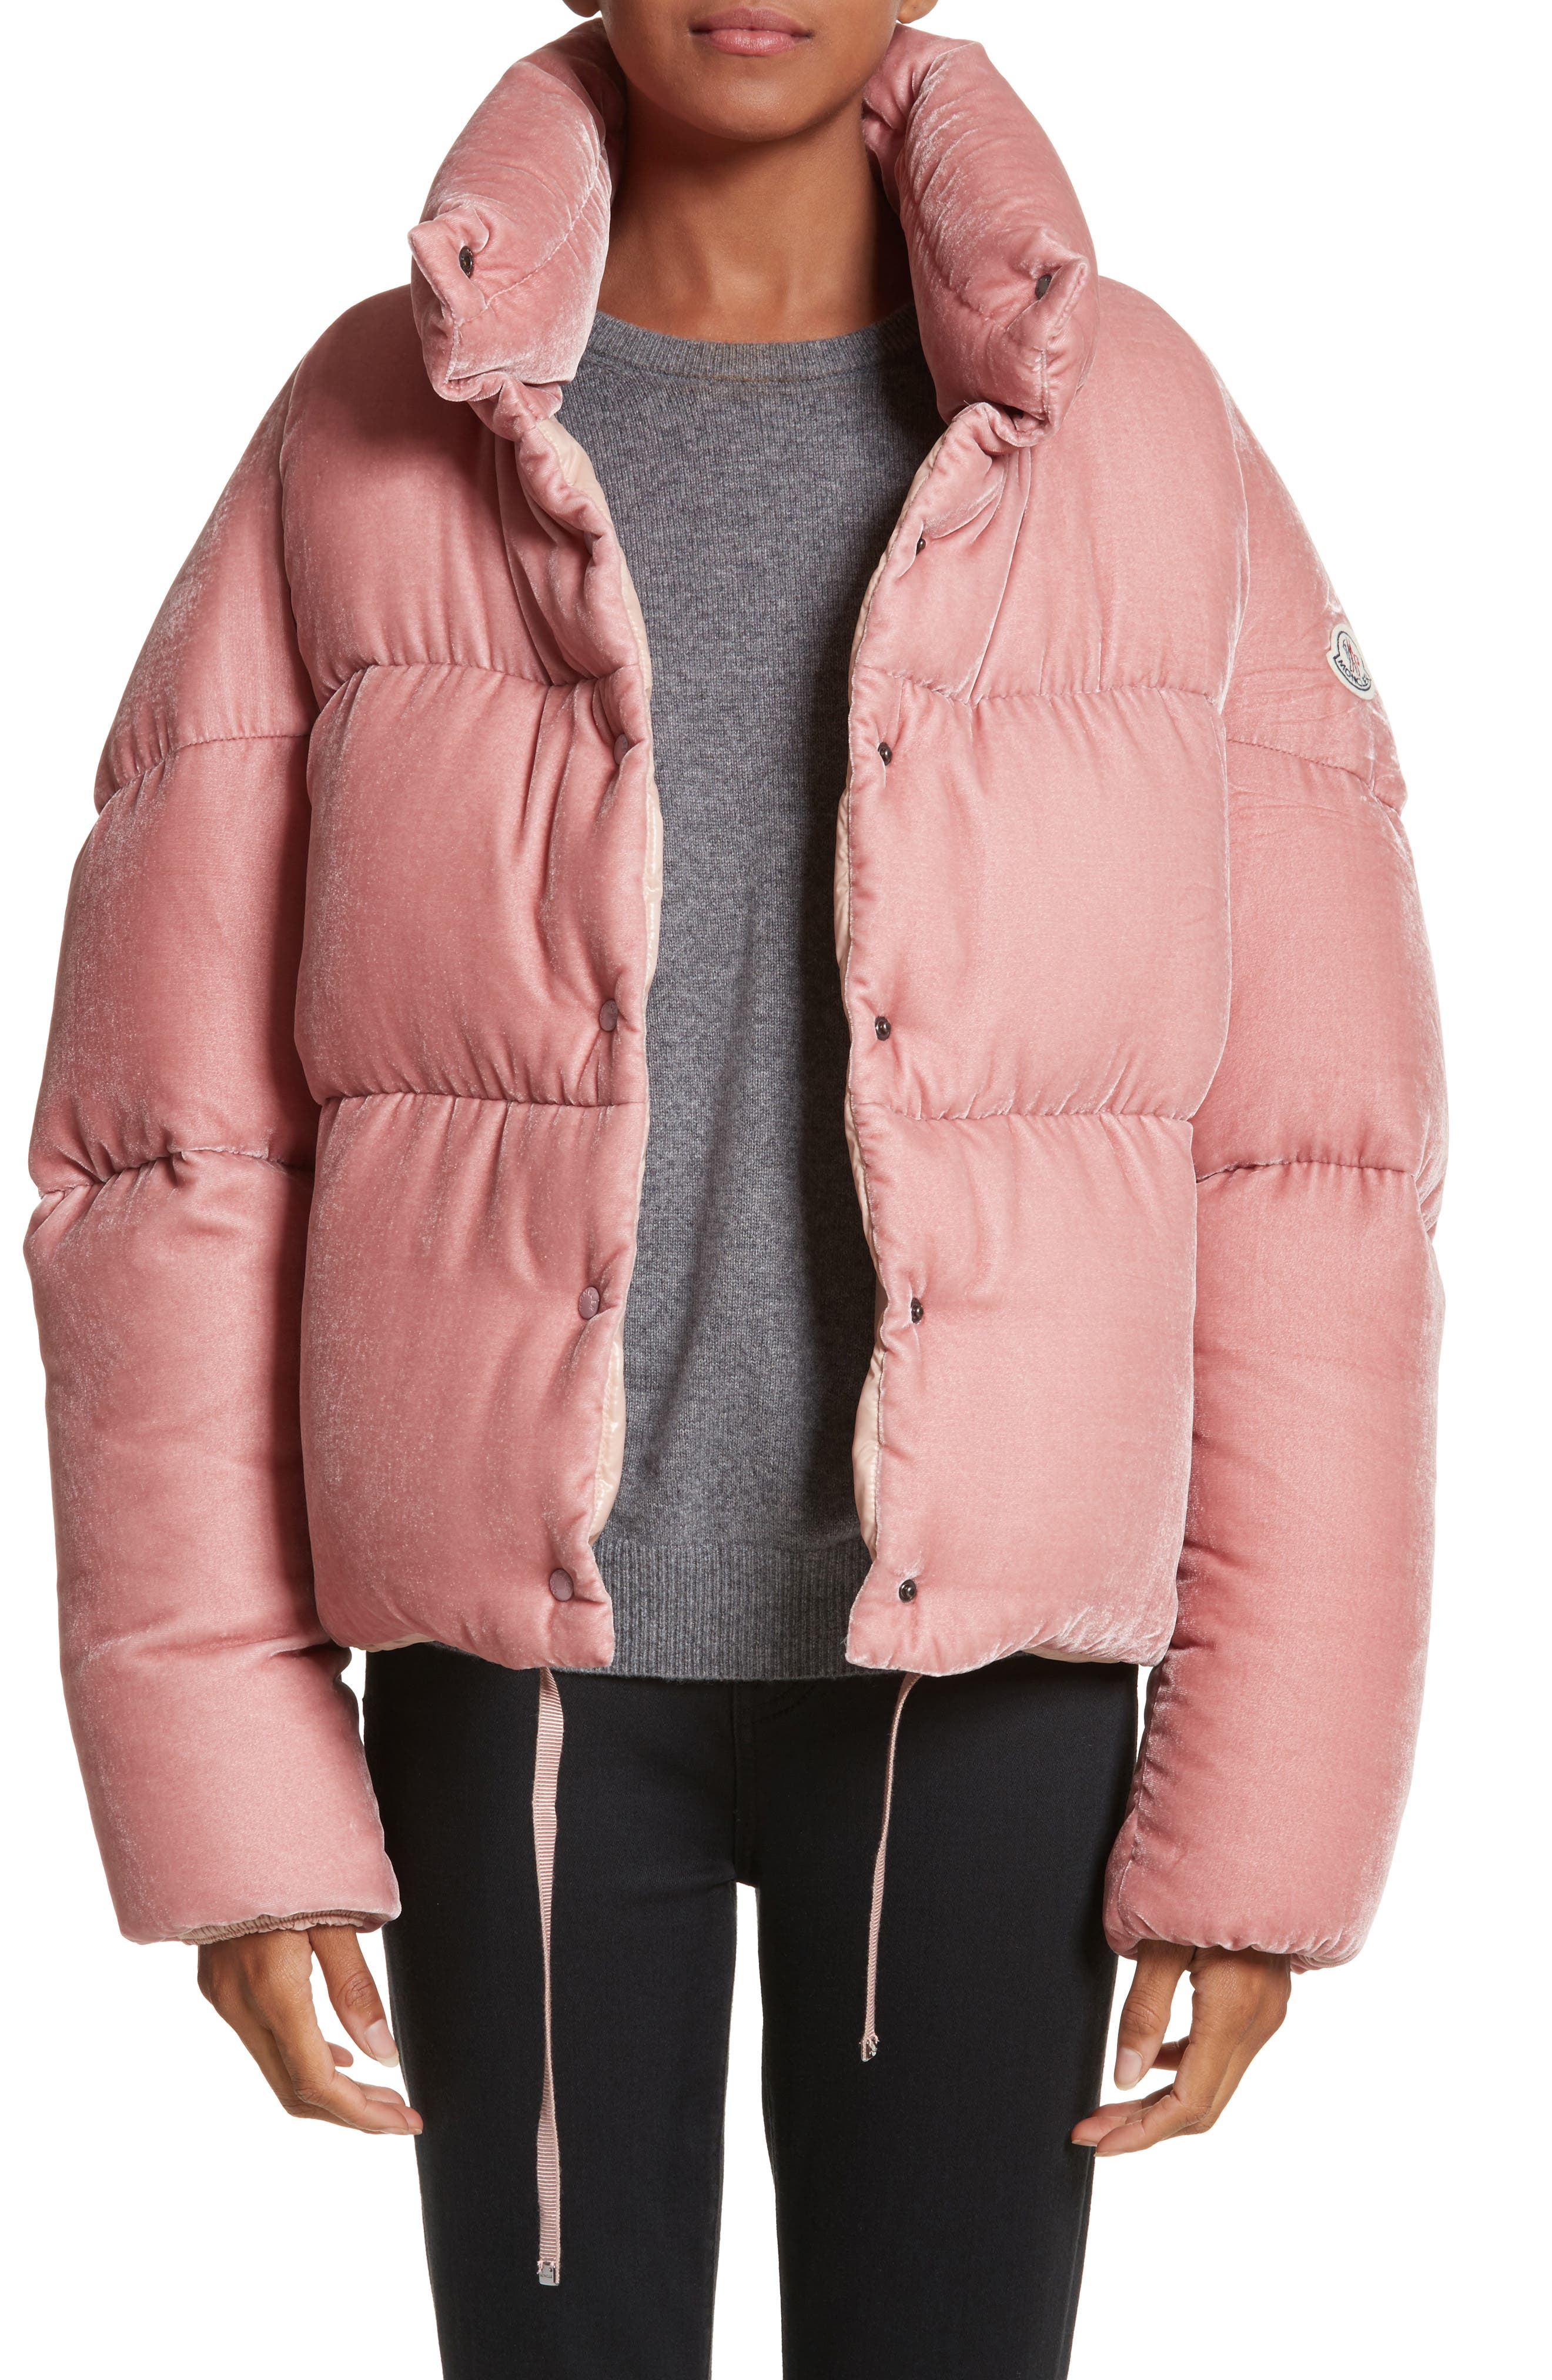 Cercis Velvet Quilted Down Puffer Coat,                             Main thumbnail 1, color,                             669